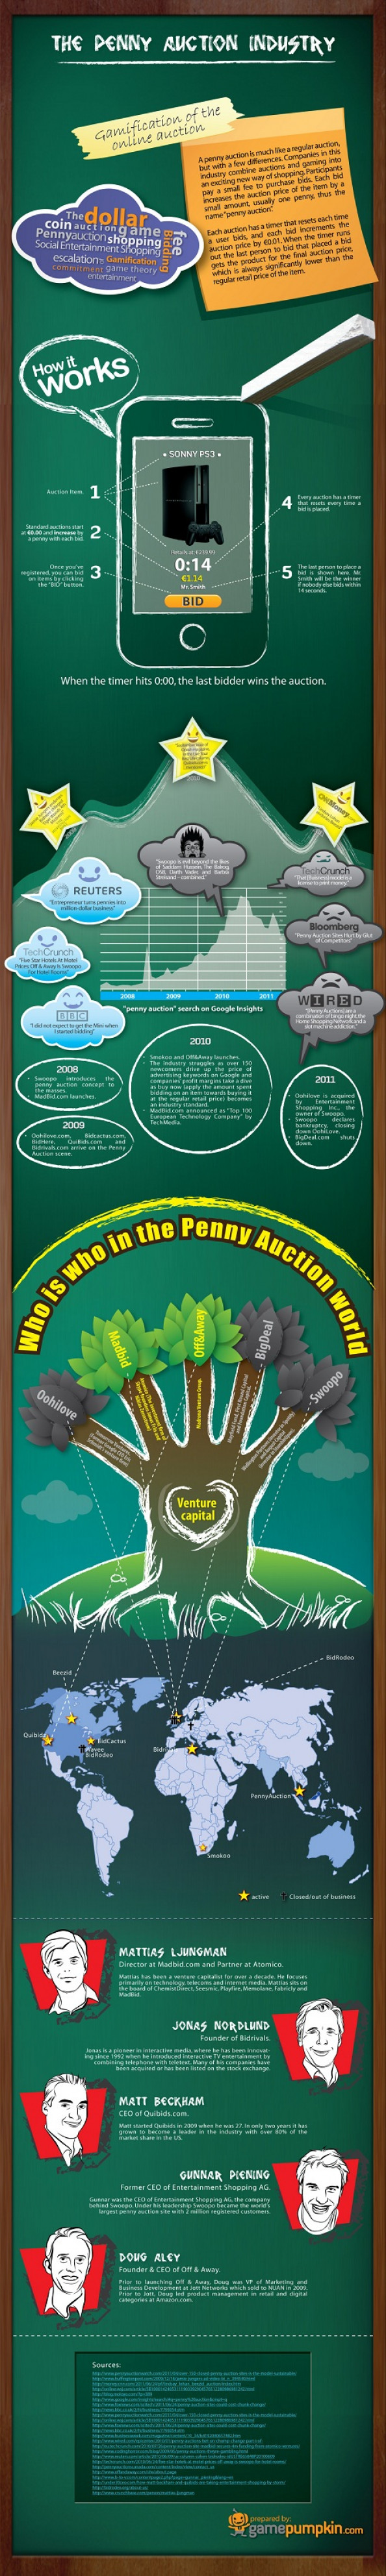 The Penny Auction Industry Infographic